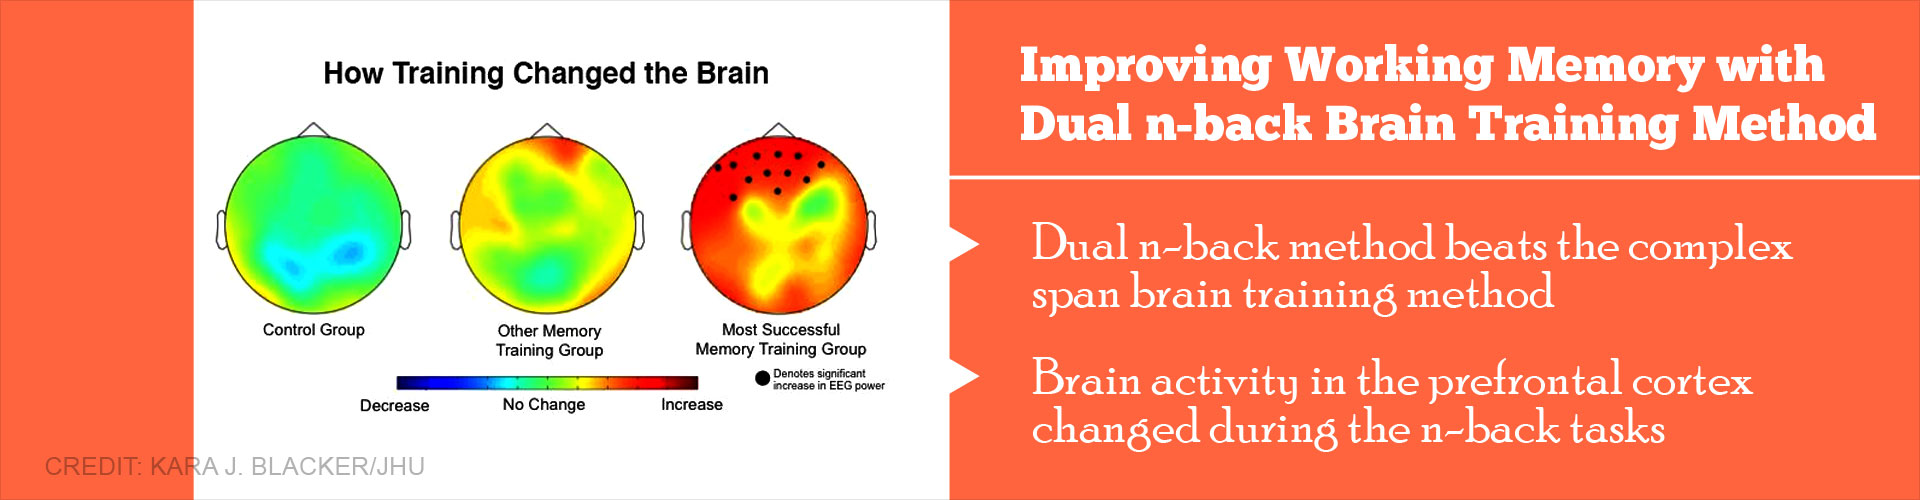 Improving working memory with dual n-back brain training method - dual n-back method beats the complex span brain training method - Brain activity in the prefrontal cortex changed during the n-back tasks